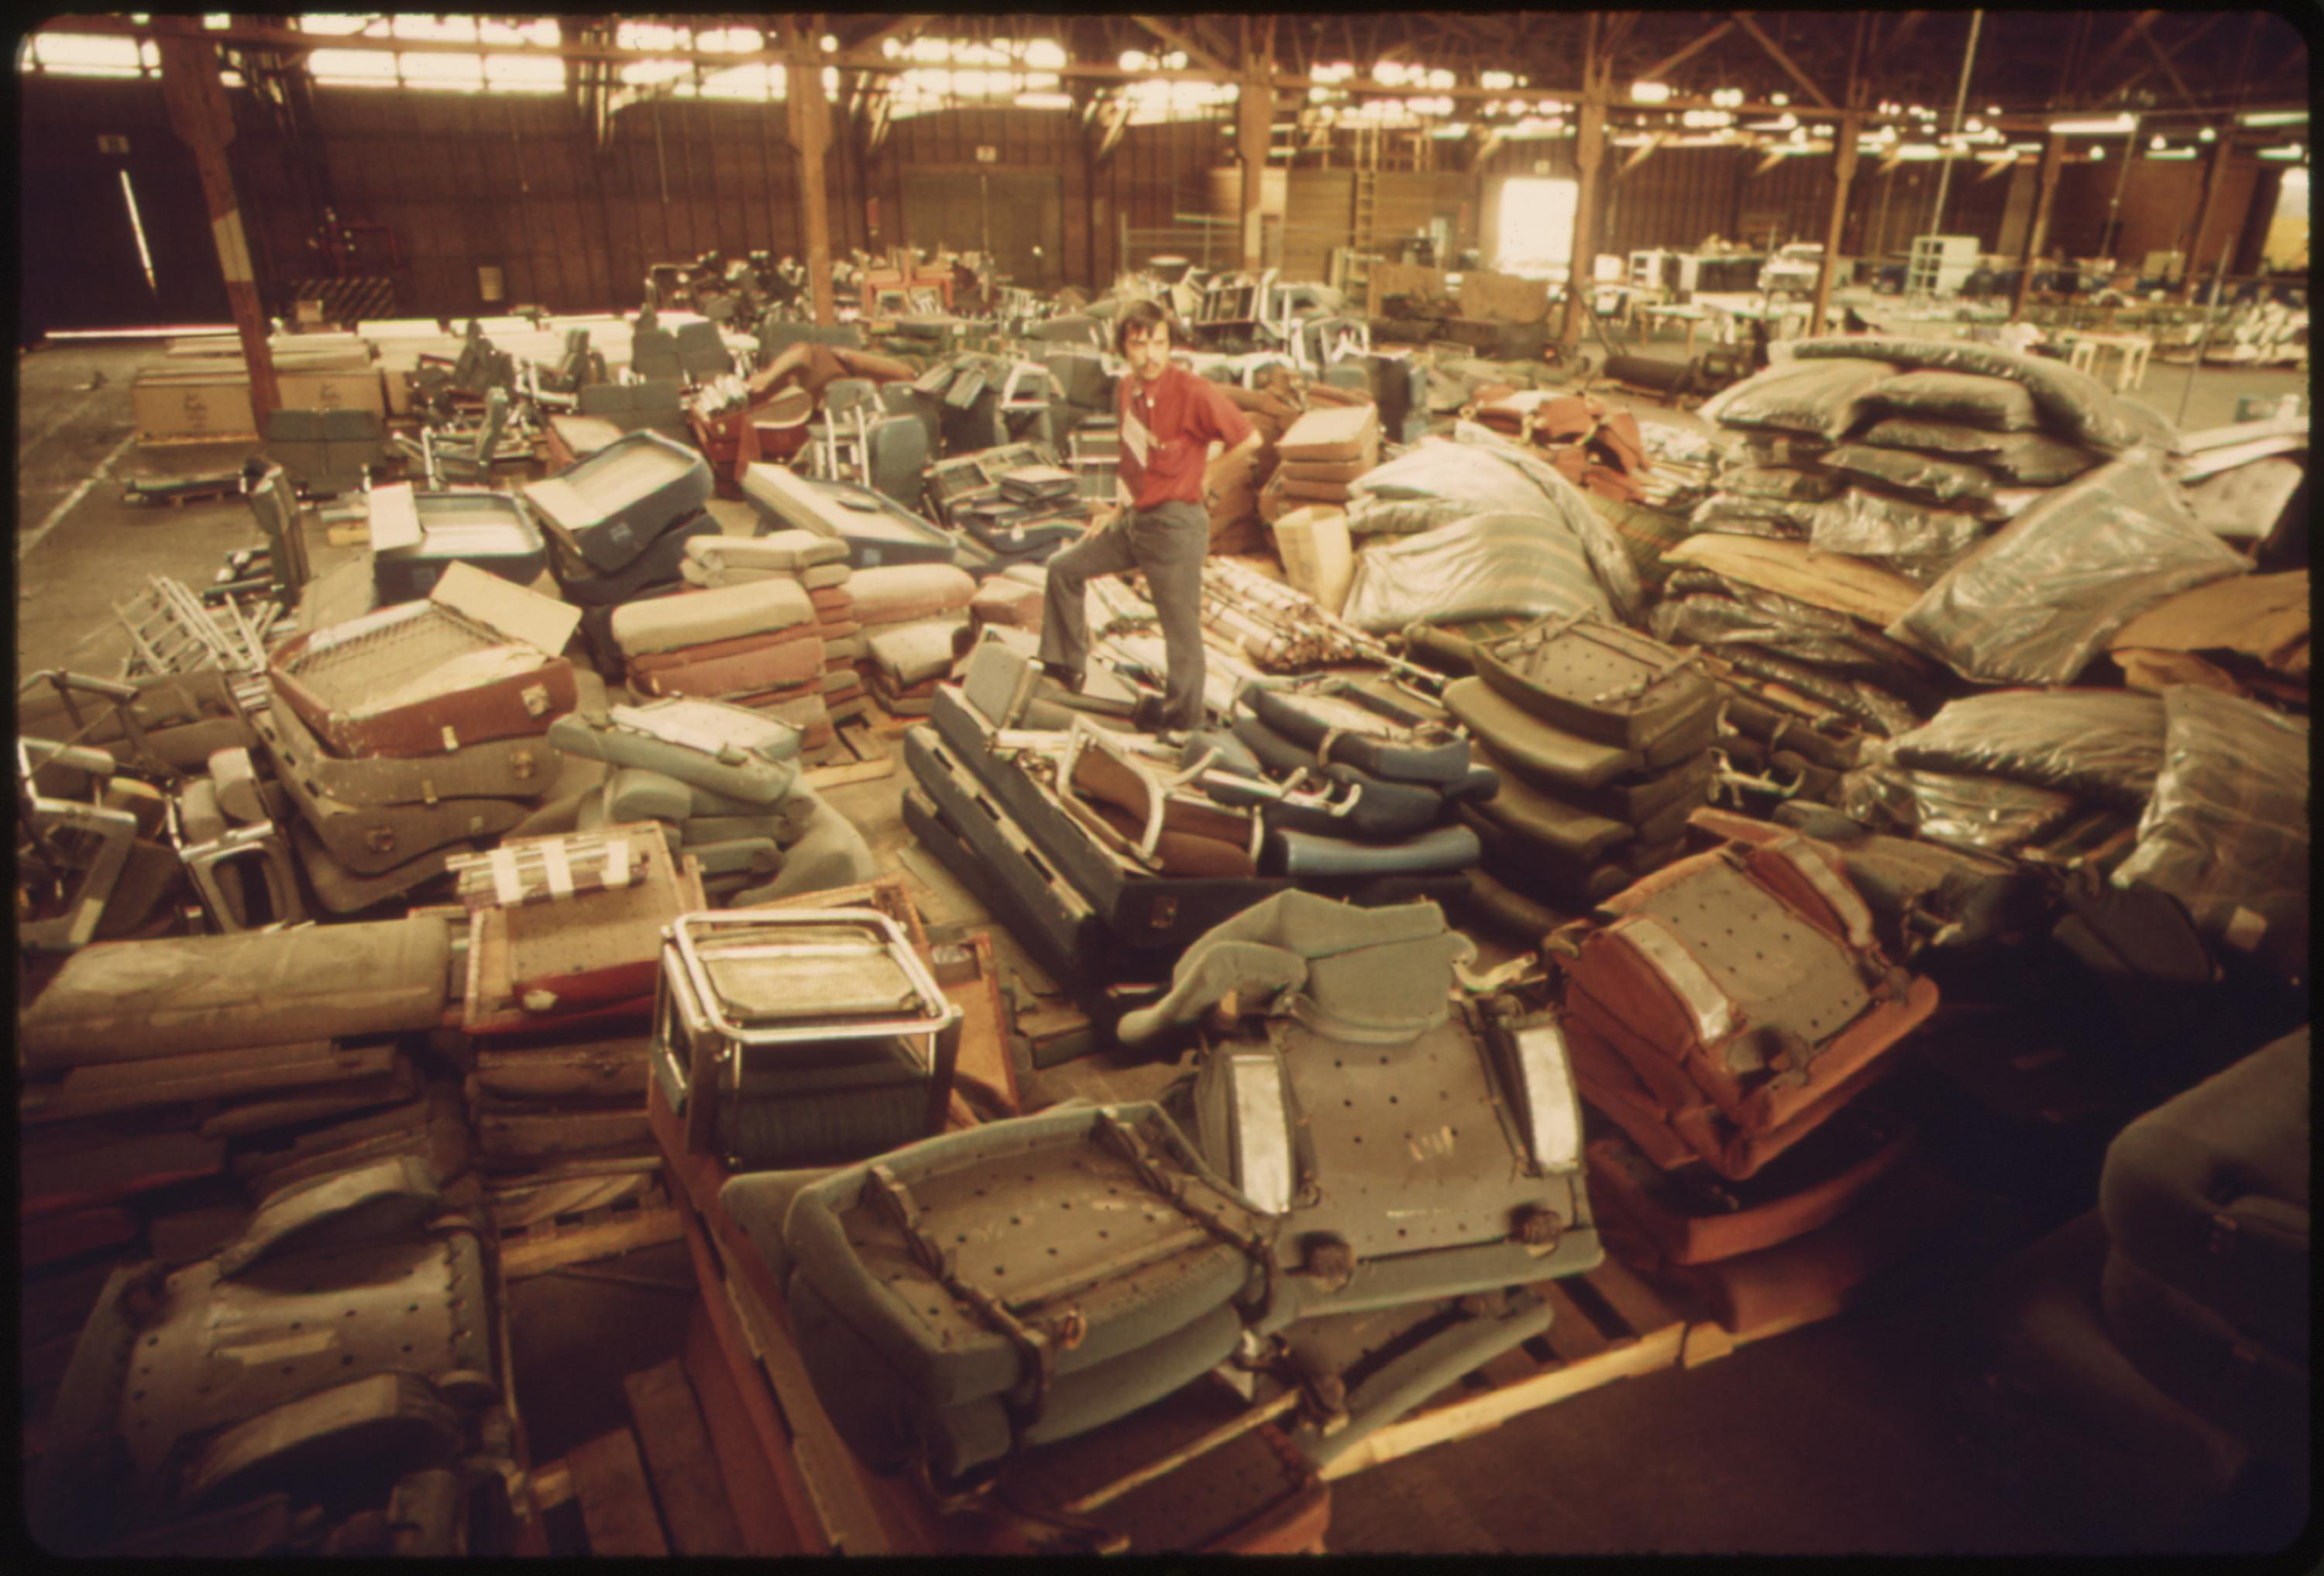 Old equipment from Amtrak passenger cars is piled in a warehouse, May 1974